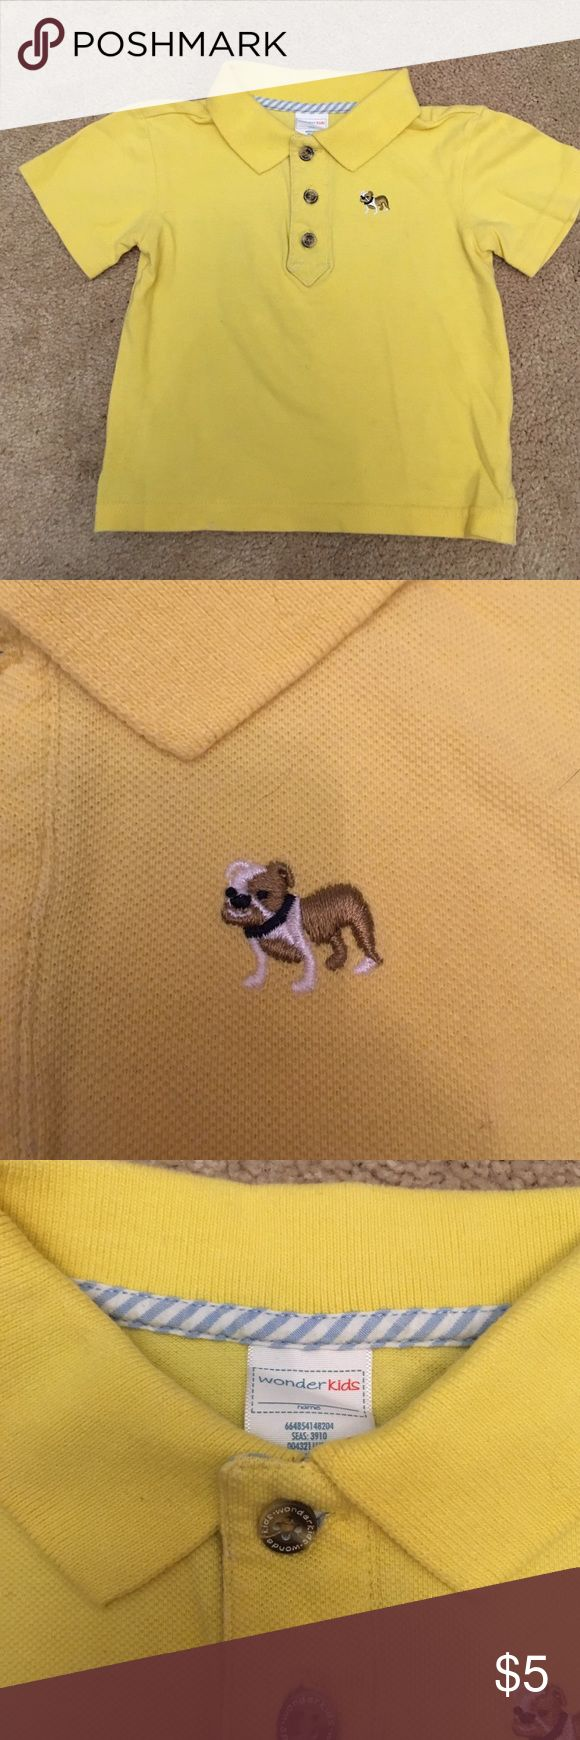 Yellow Polo Shirt Great spring time polo shirt. Embroidered bulldog on the chest. Gently worn. Shirts & Tops Polos